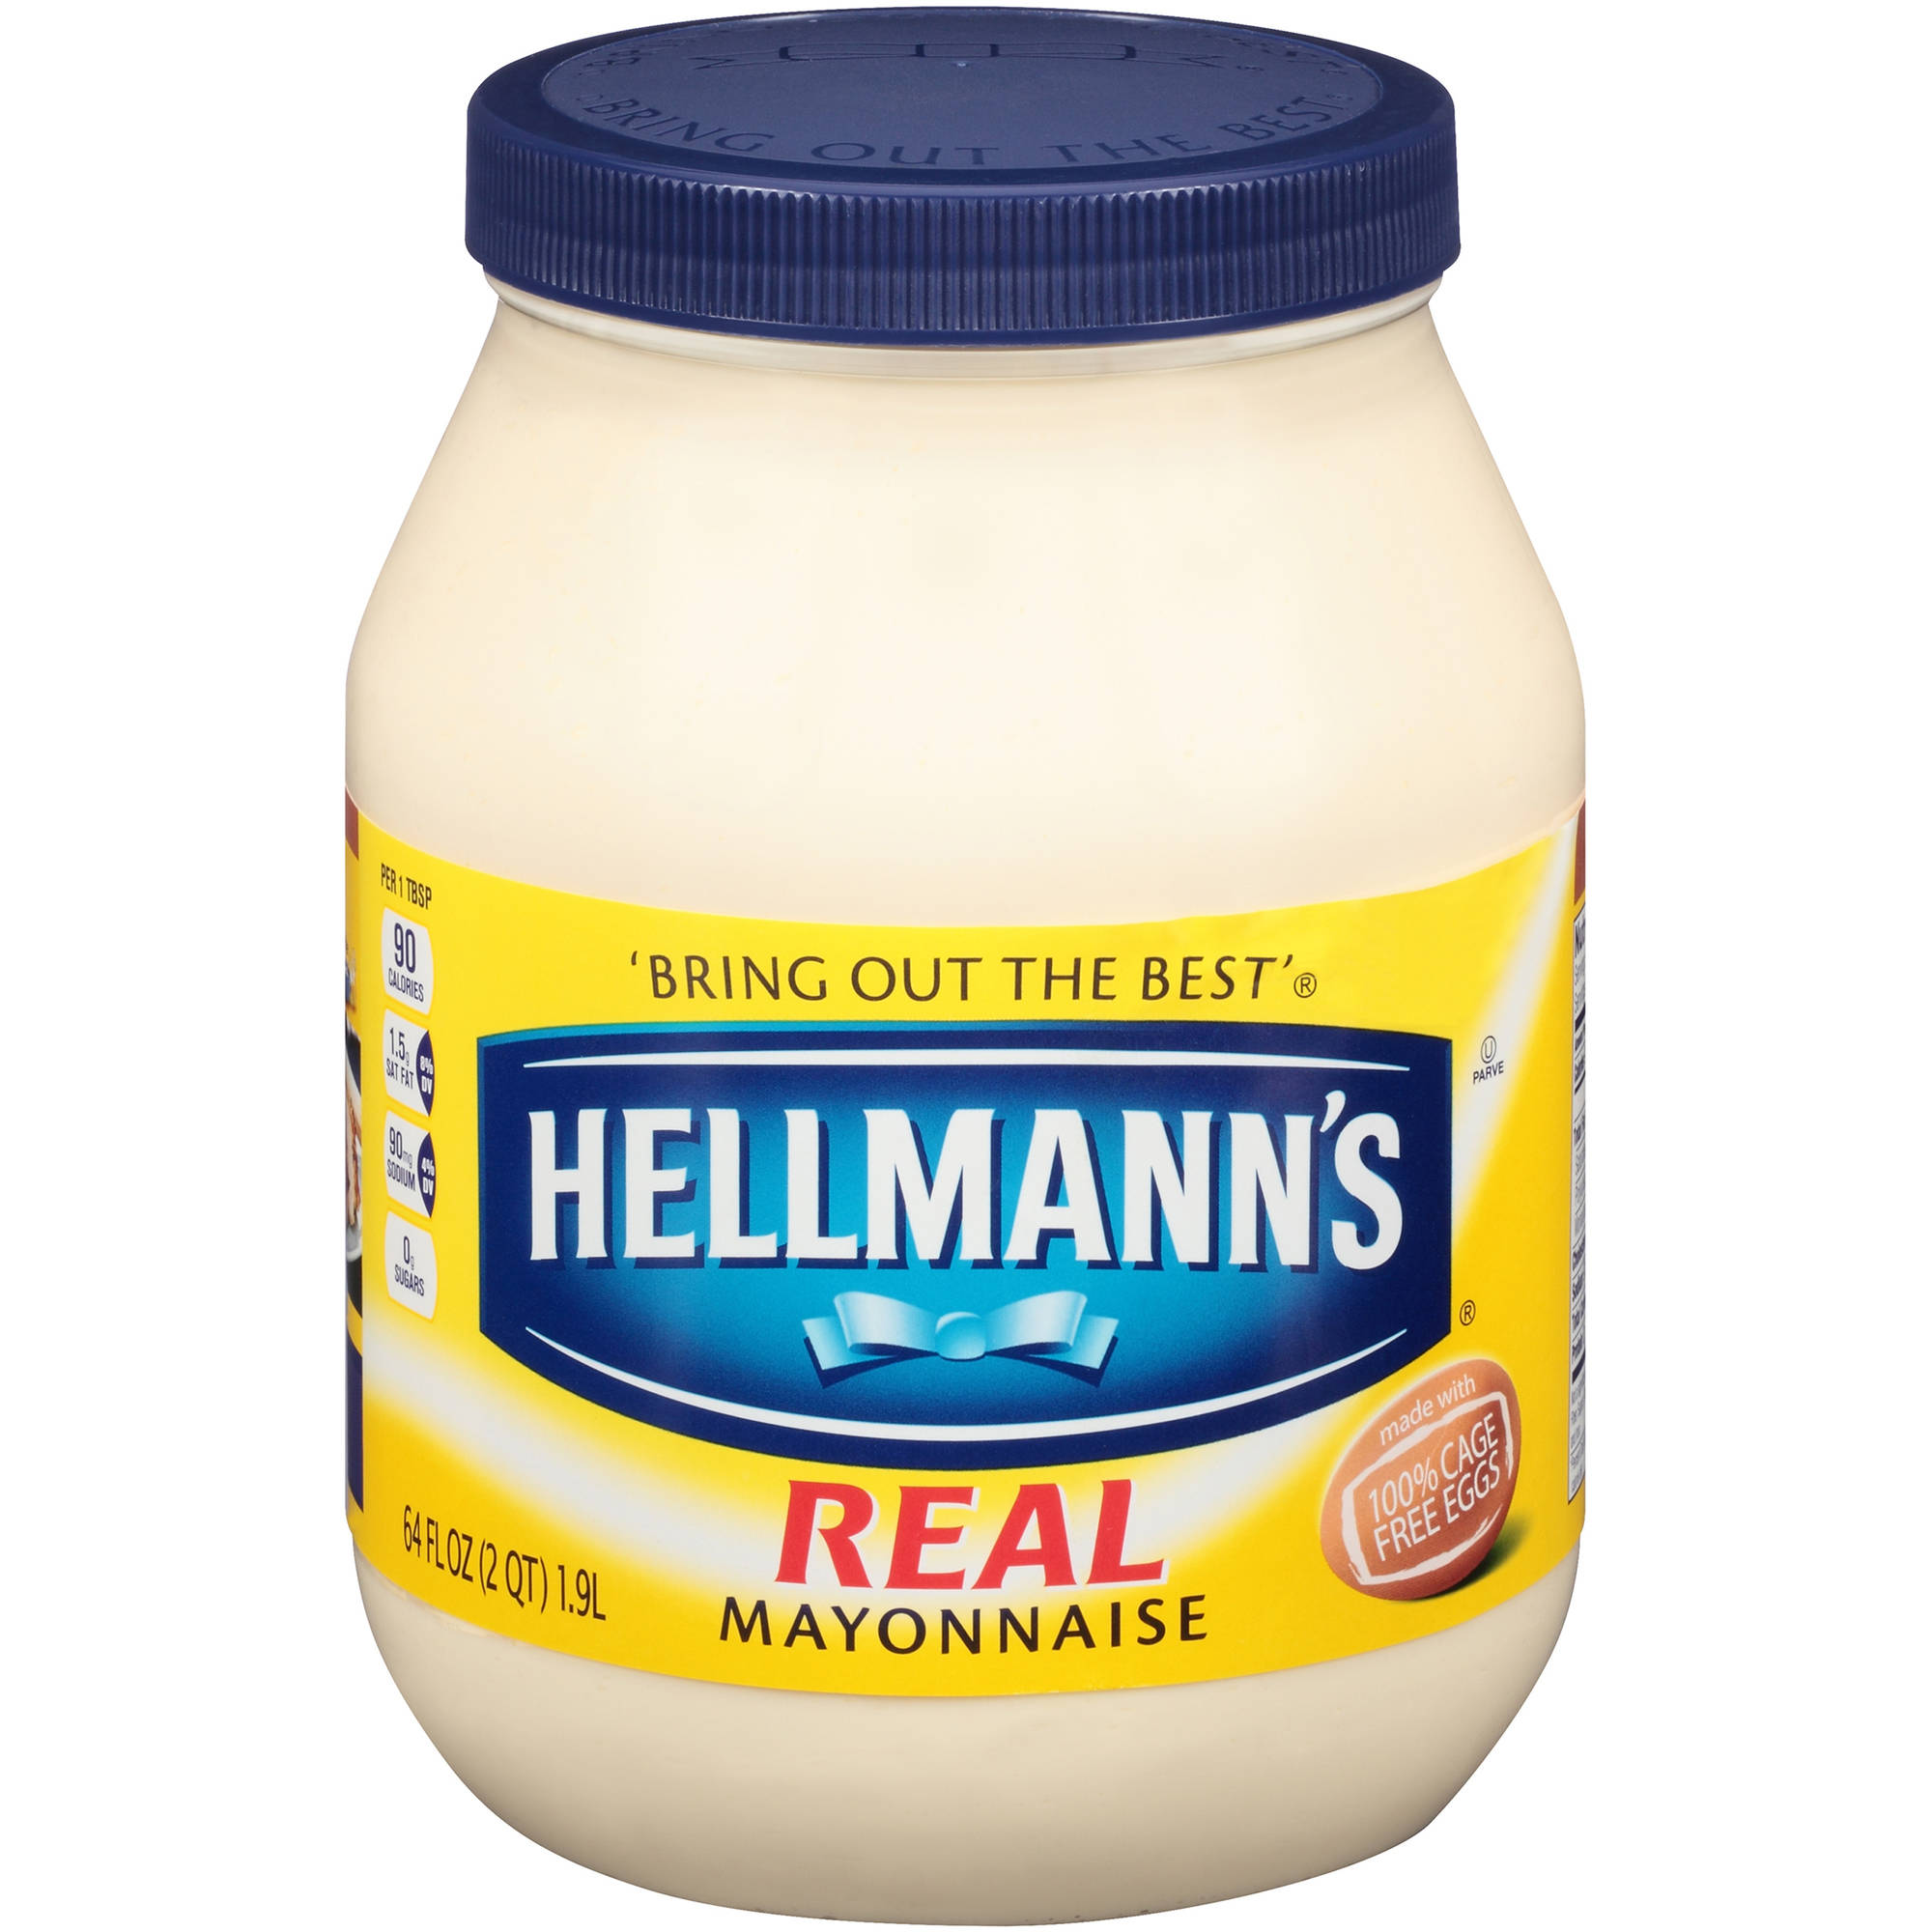 Hellmann's Mayonnaise for Delicious Sandwiches Real Mayo Rich in Omega 3-ALA 64 oz